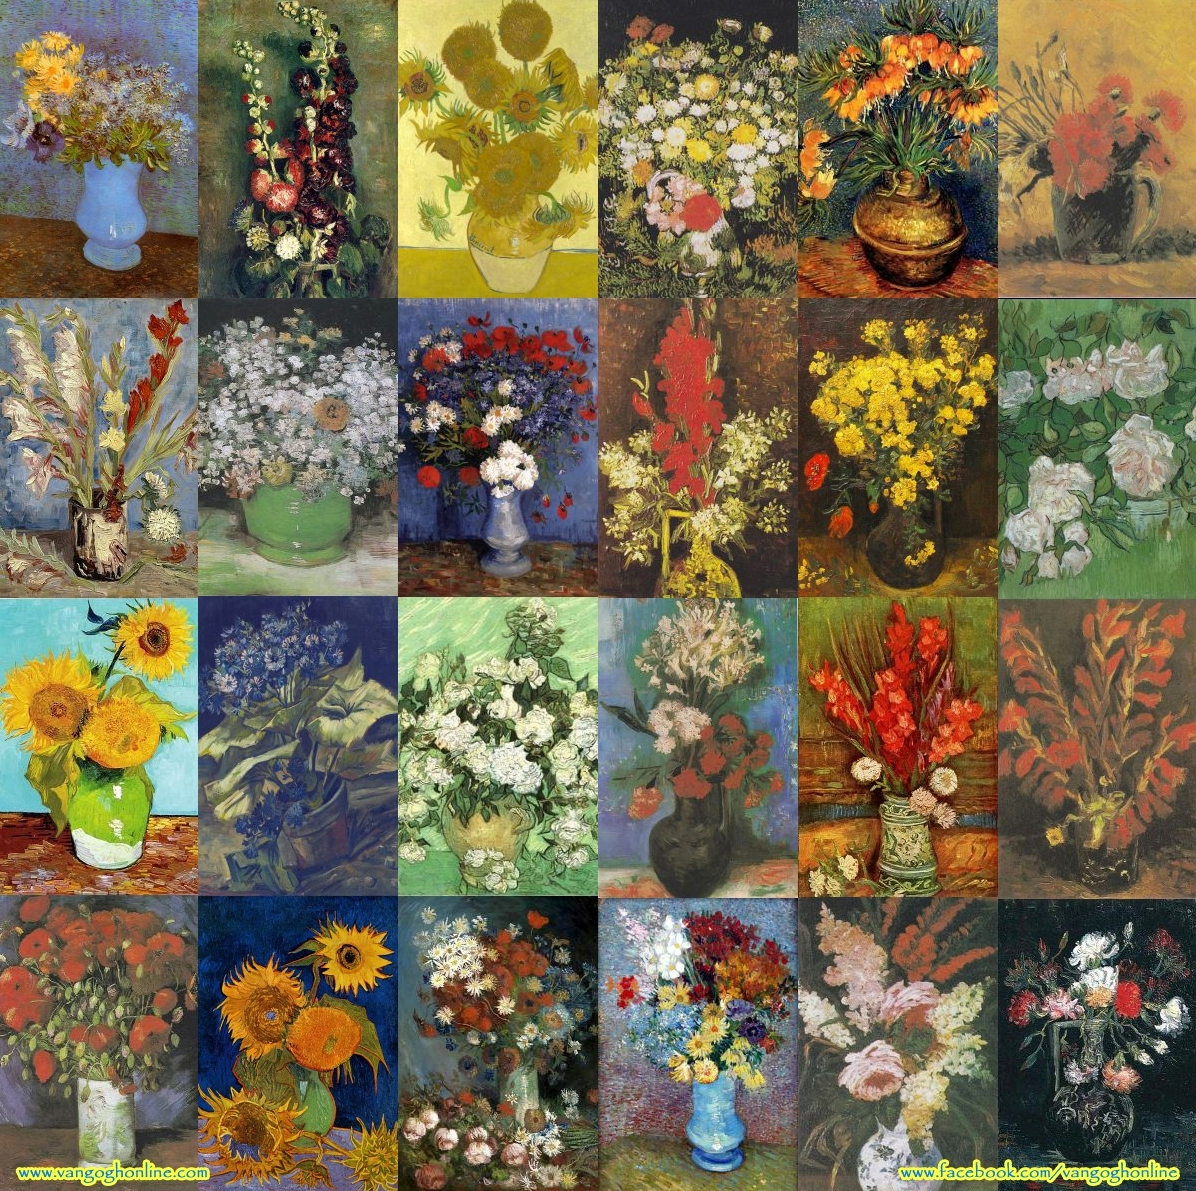 Montage of Vincent van Gogh still life paintings of flowers